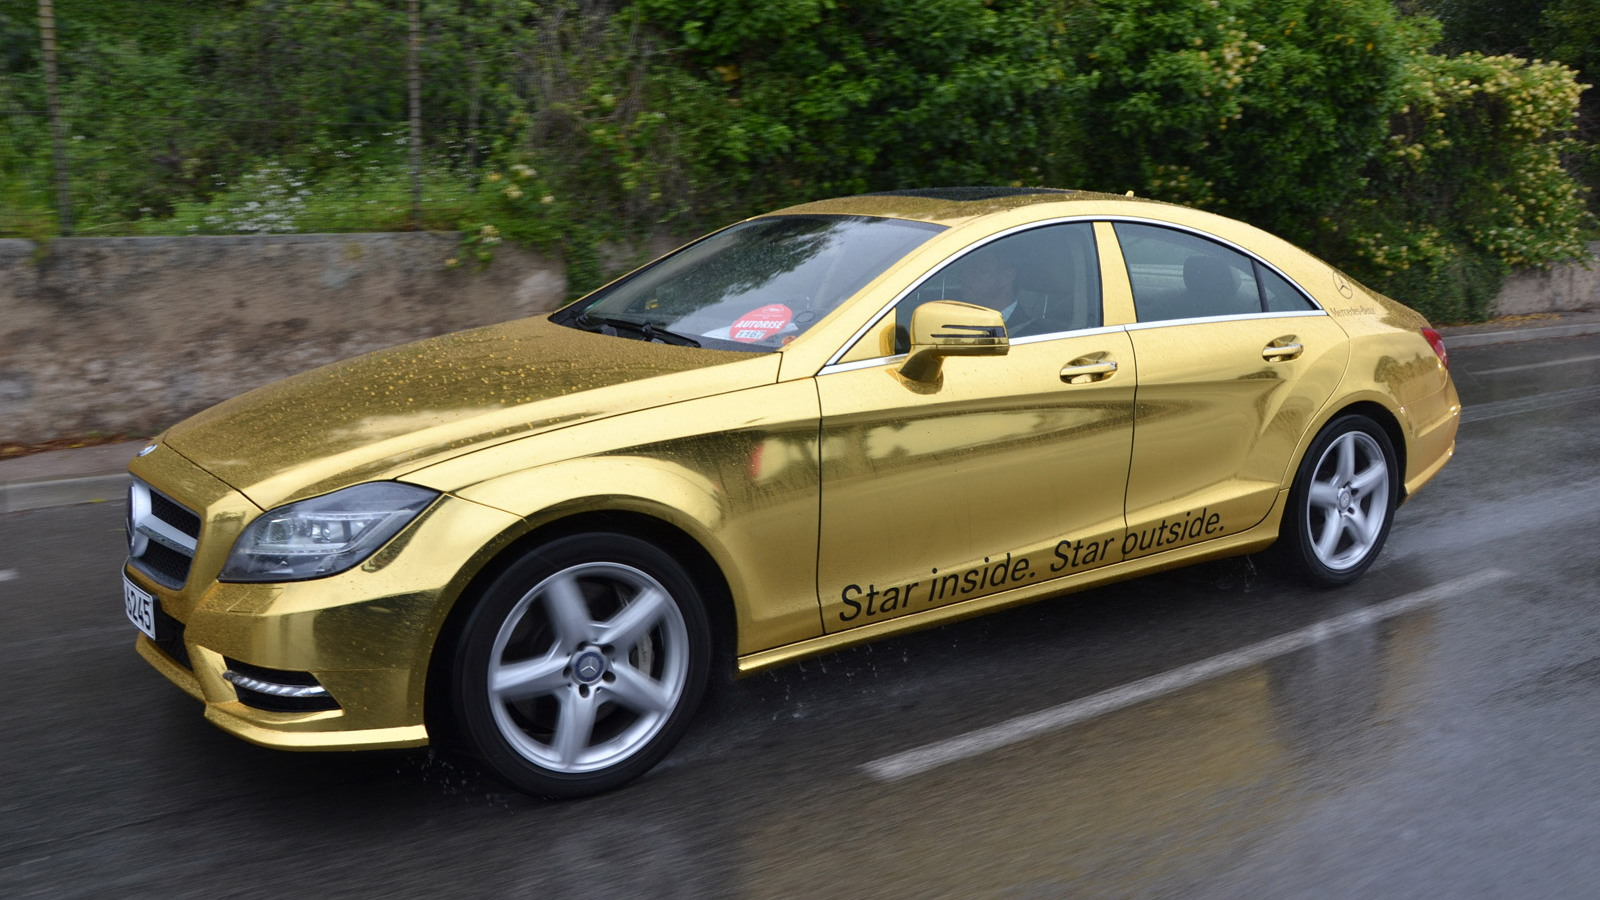 Mercedes-Benz gold shuttle service at the 2012 Cannes Film Festival